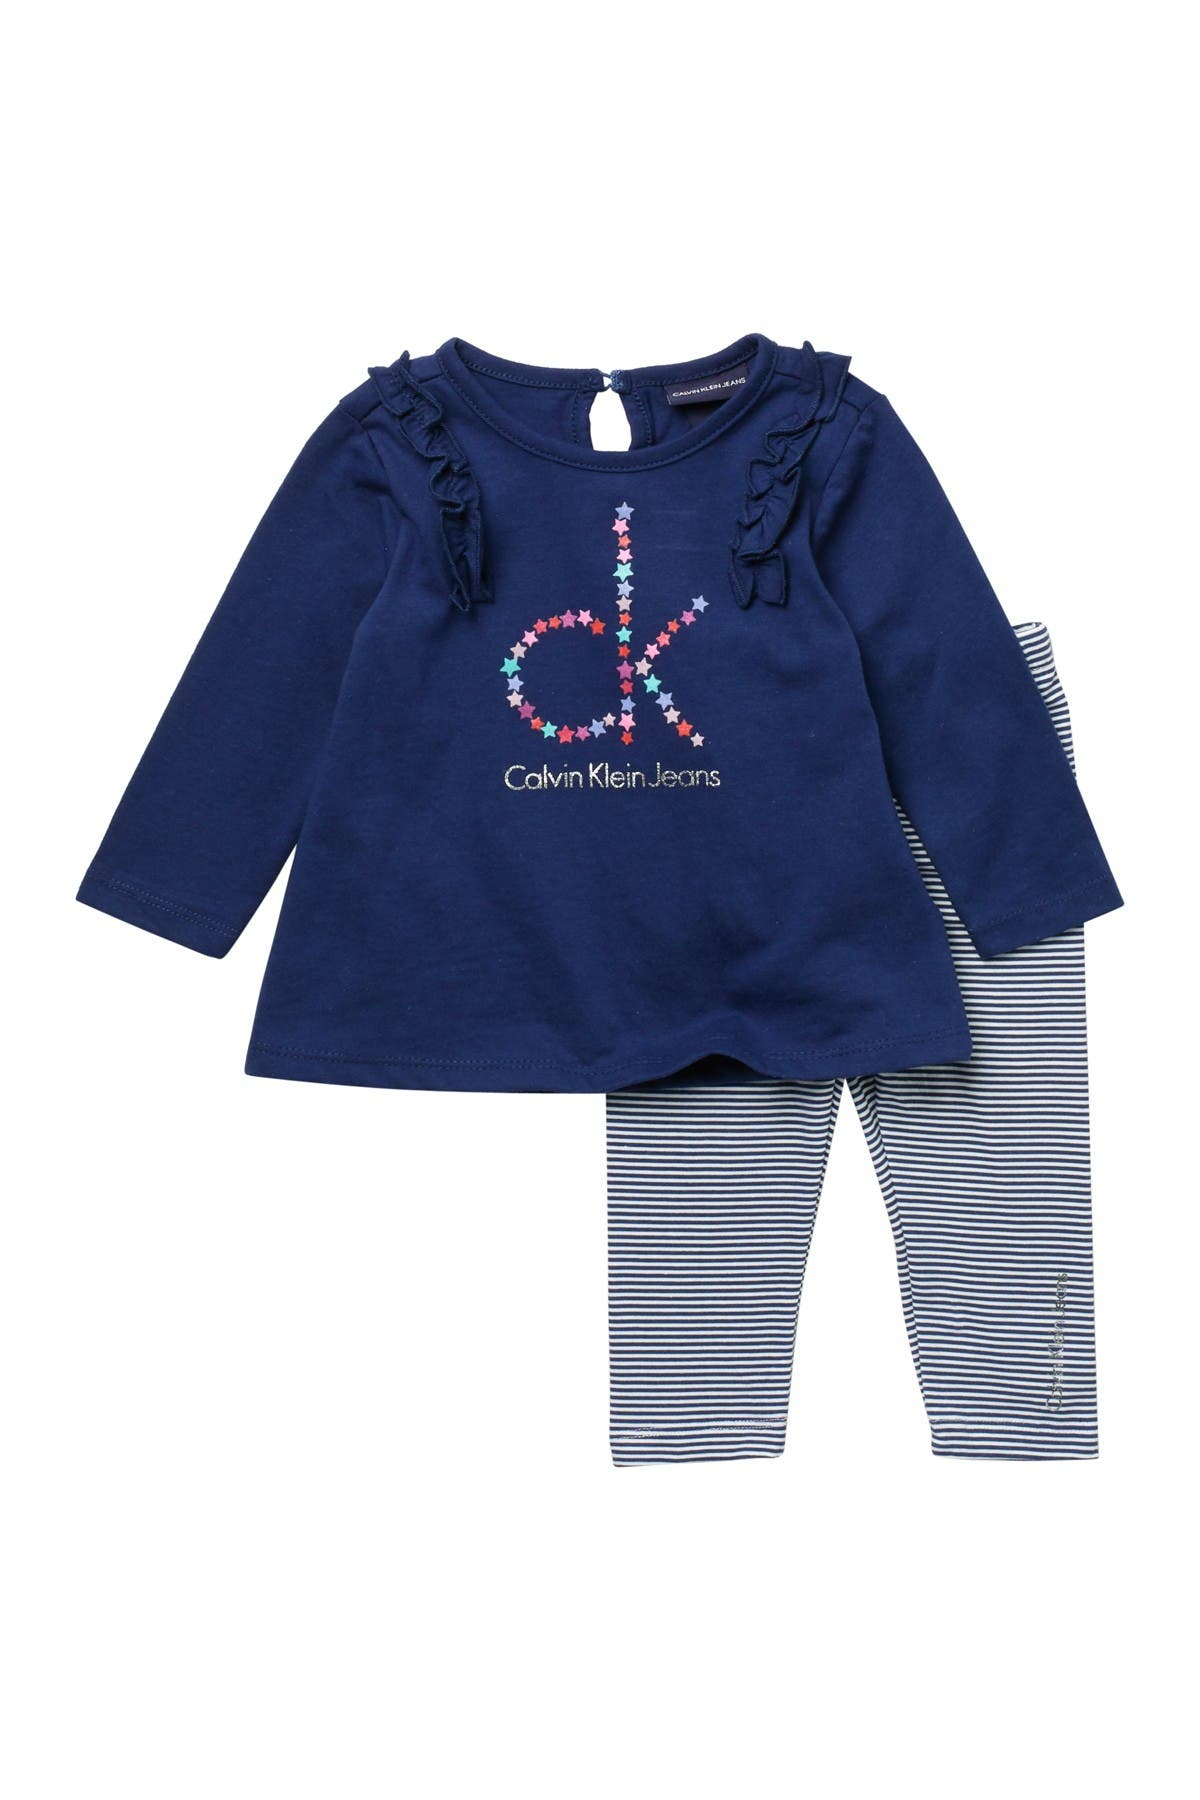 Image of Calvin Klein Long Sleeve Top & Striped Leggings Set